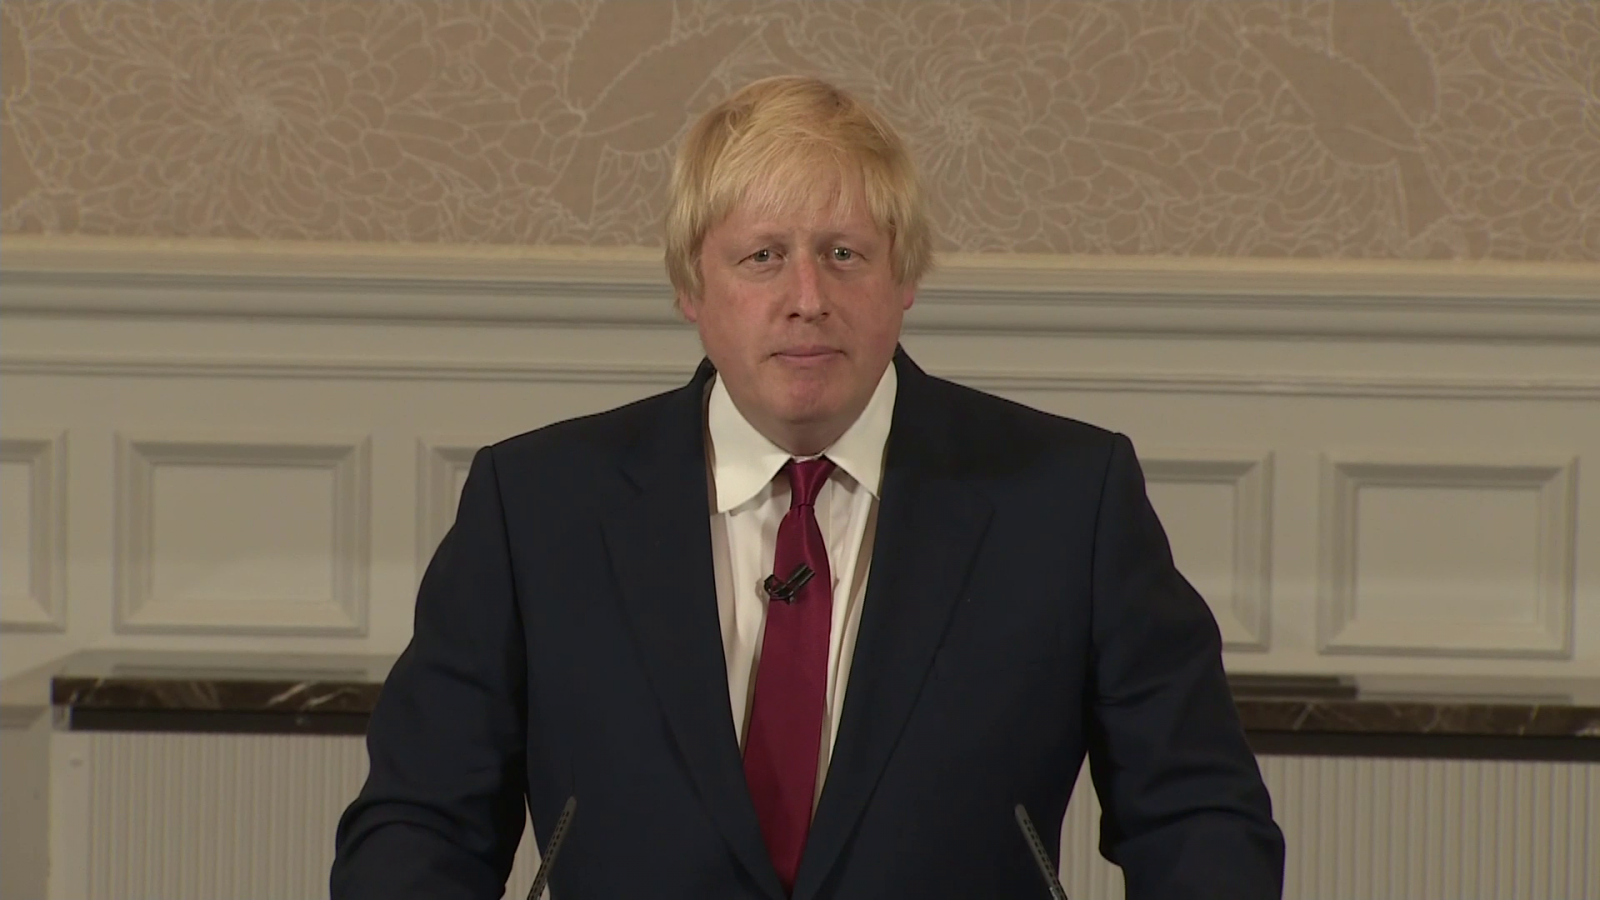 Boris Johnson pulls out of Tory leadership race